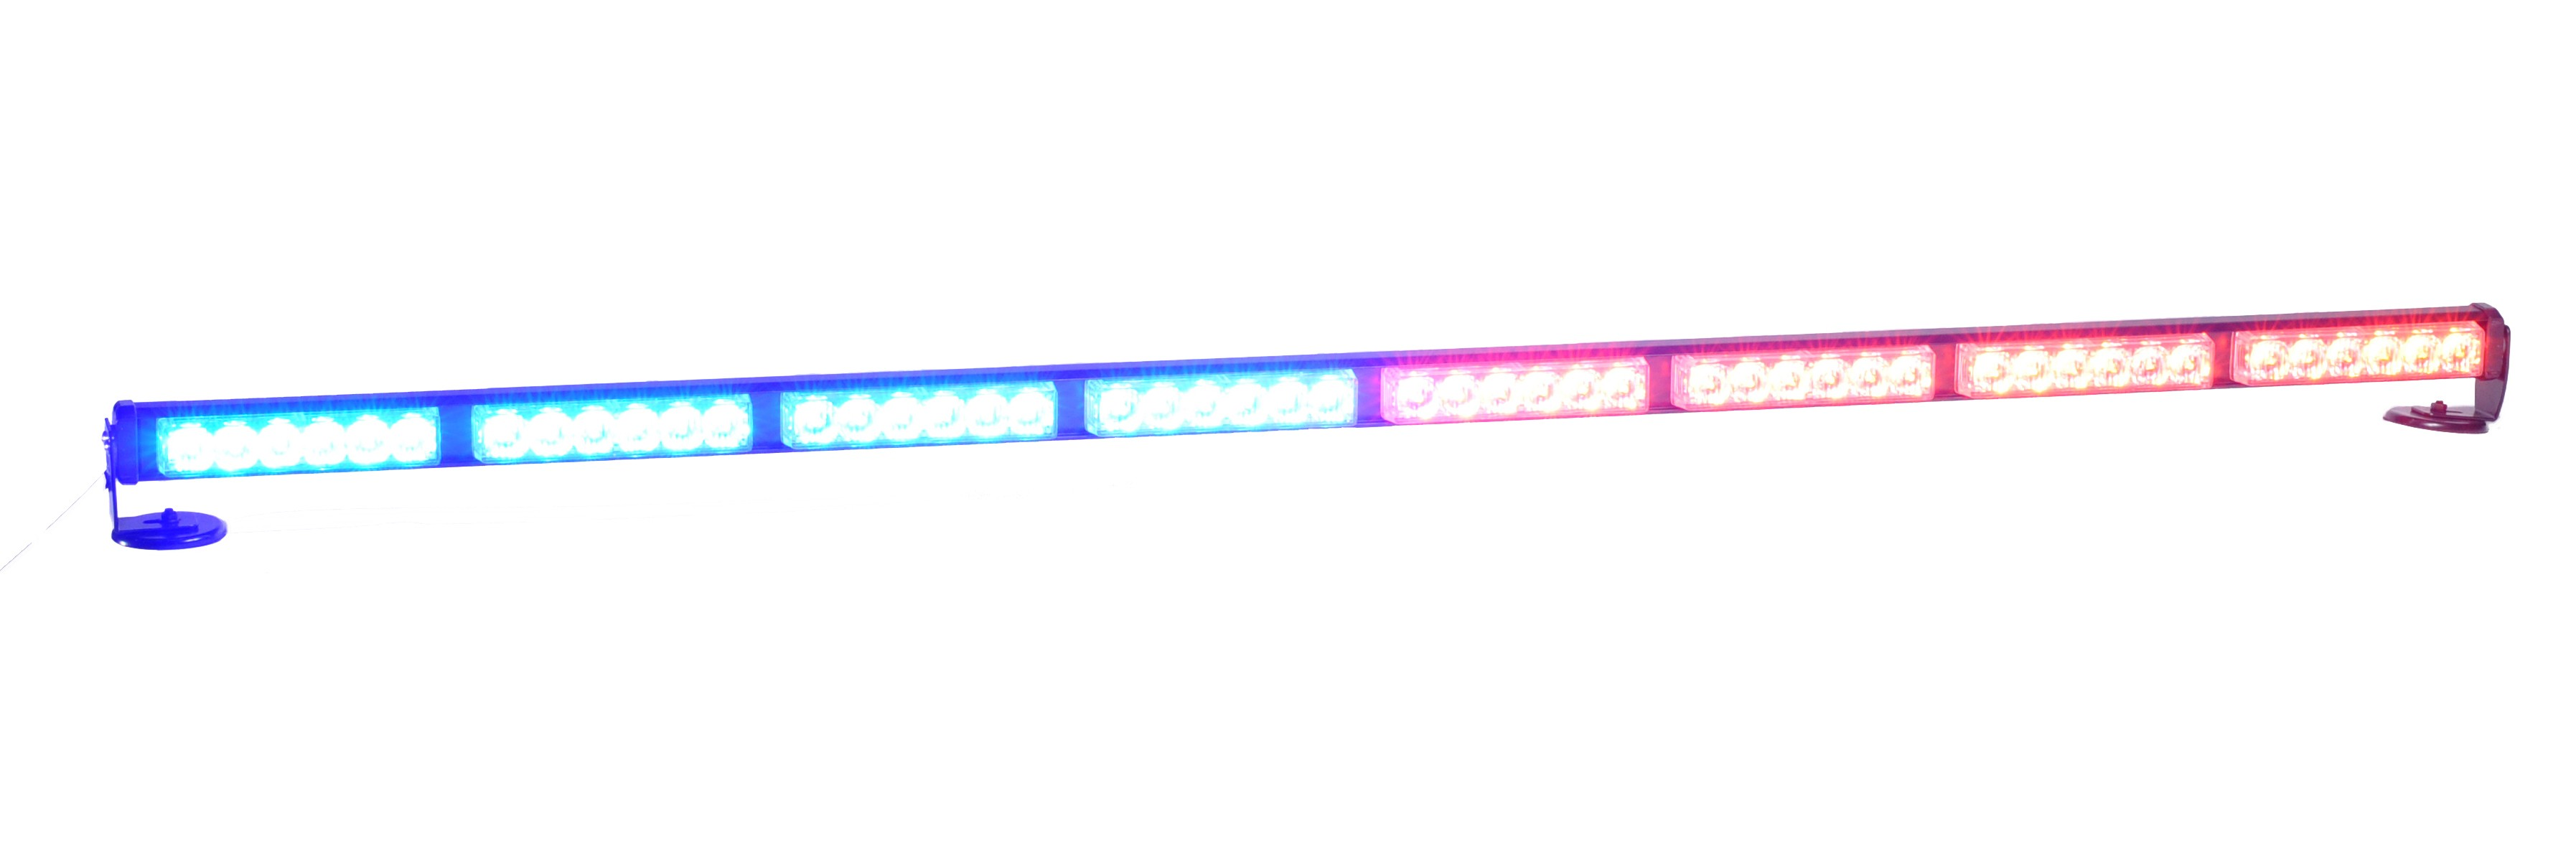 Police Interior Lights Interior Light Bar Police